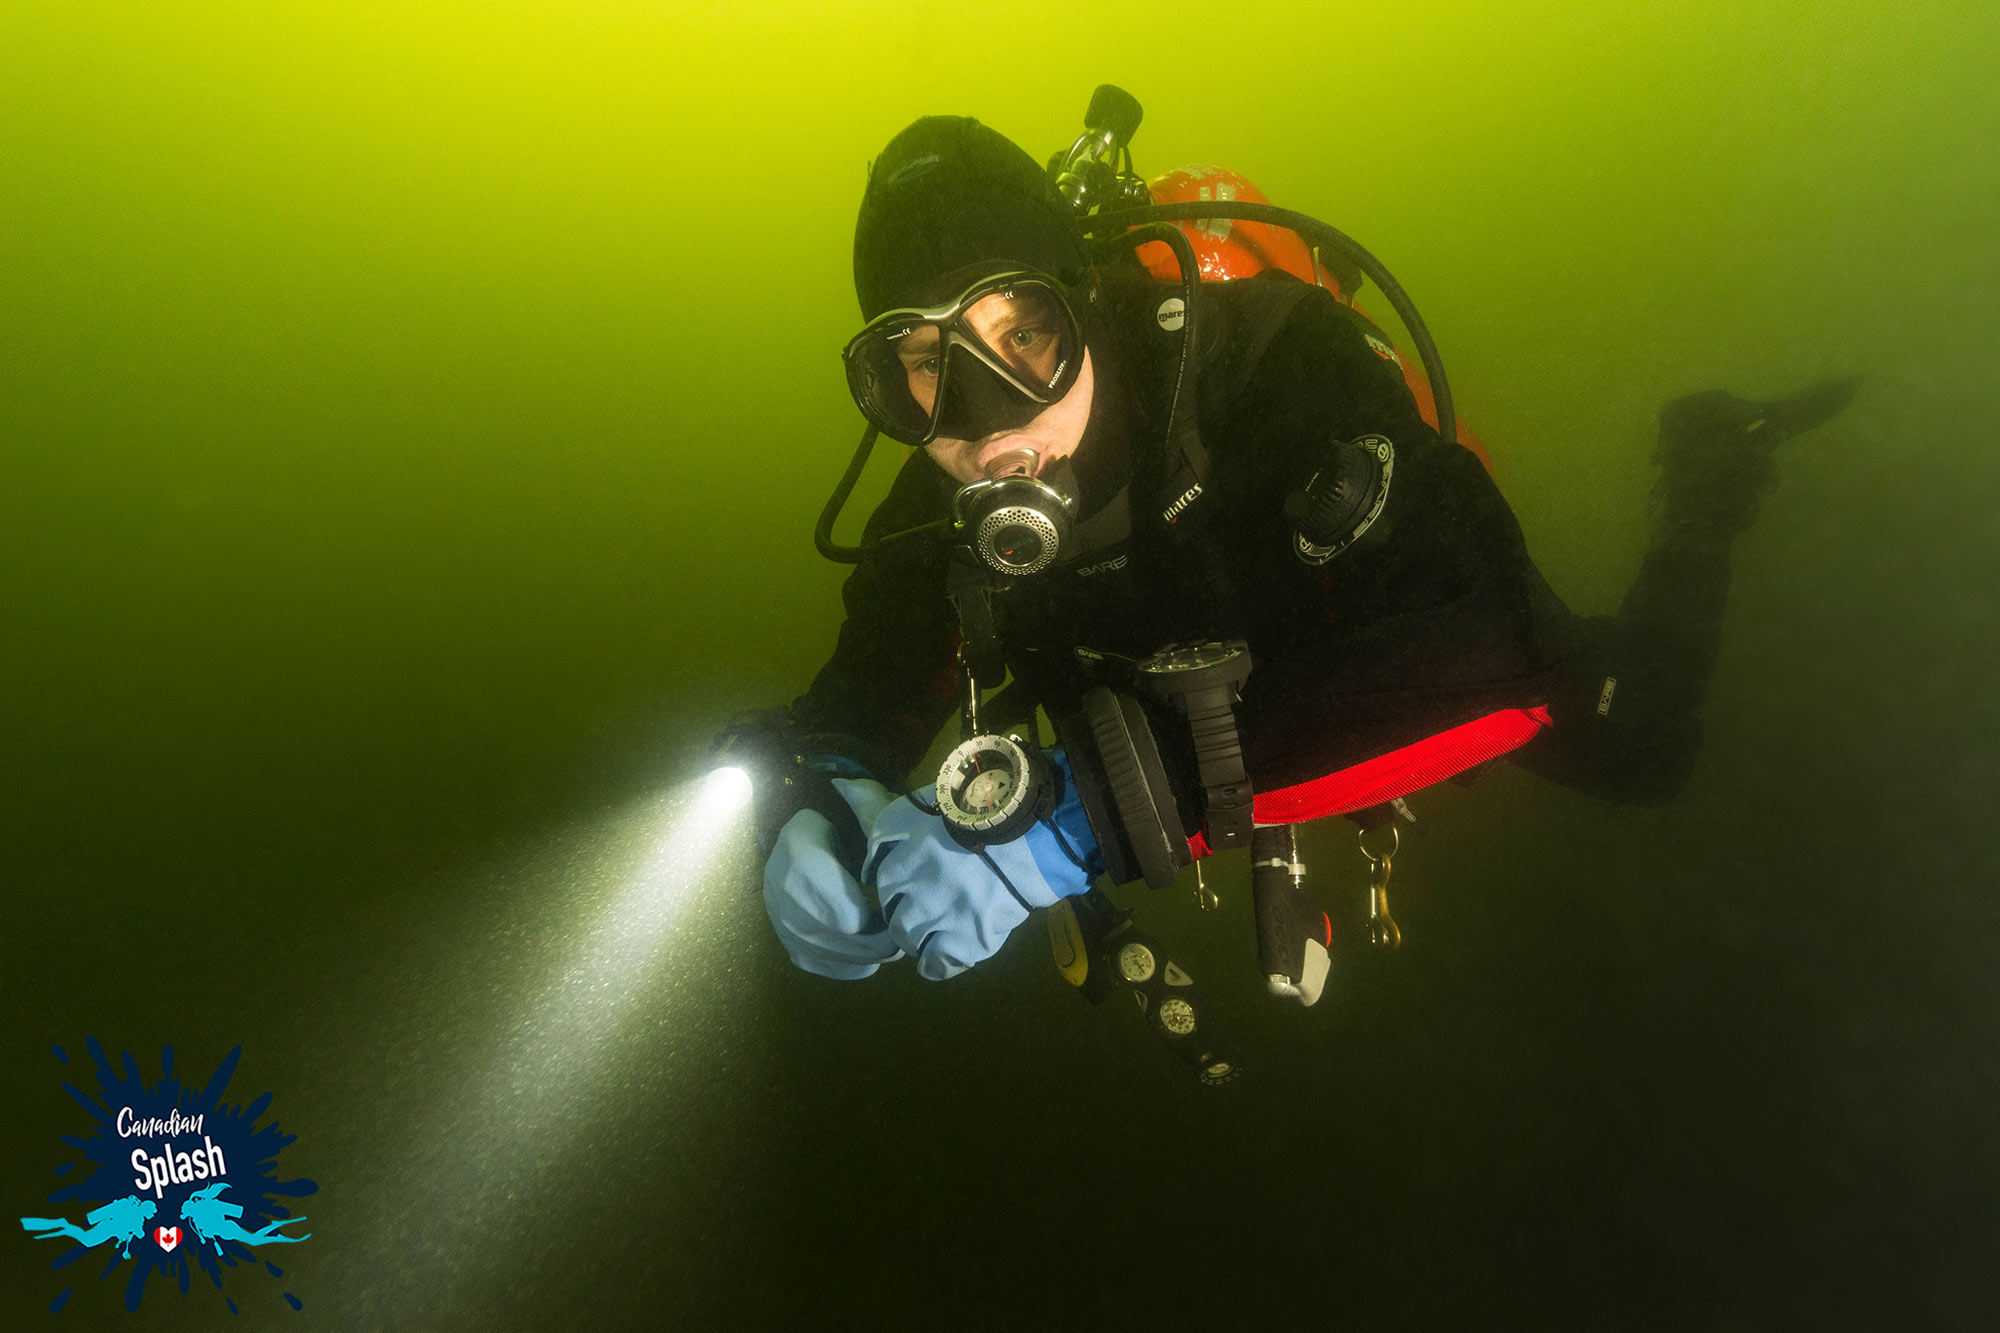 Joey Scuba Diving In A Stratified Lake In Ontario Above The Thermocline, Canadian Splash